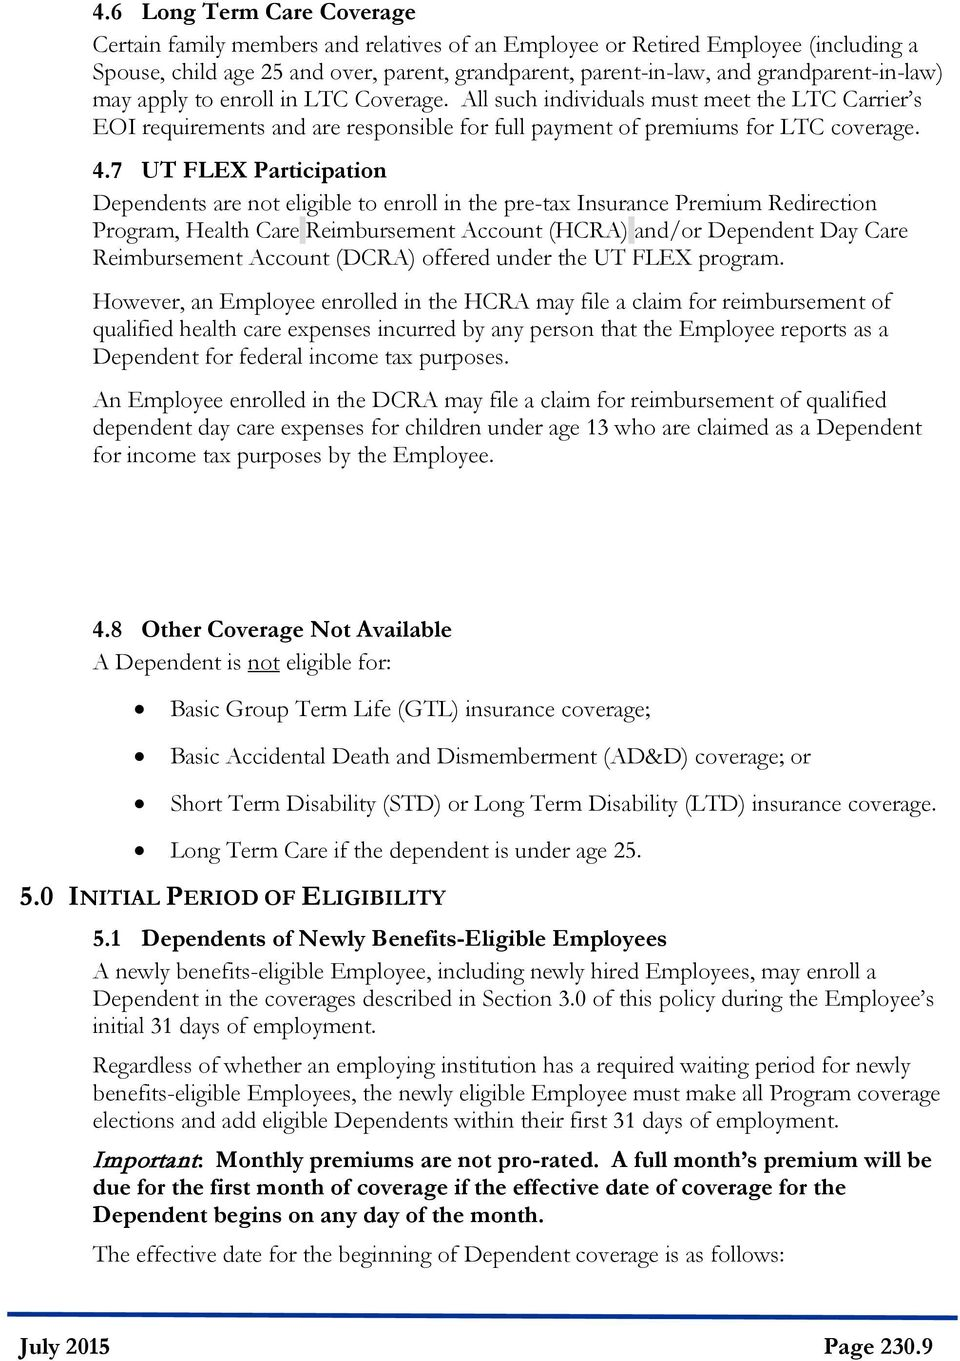 7 UT FLEX Participation Dependents are not eligible to enroll in the pre-tax Insurance Premium Redirection Program, Health Care Reimbursement Account (HCRA) and/or Dependent Day Care Reimbursement